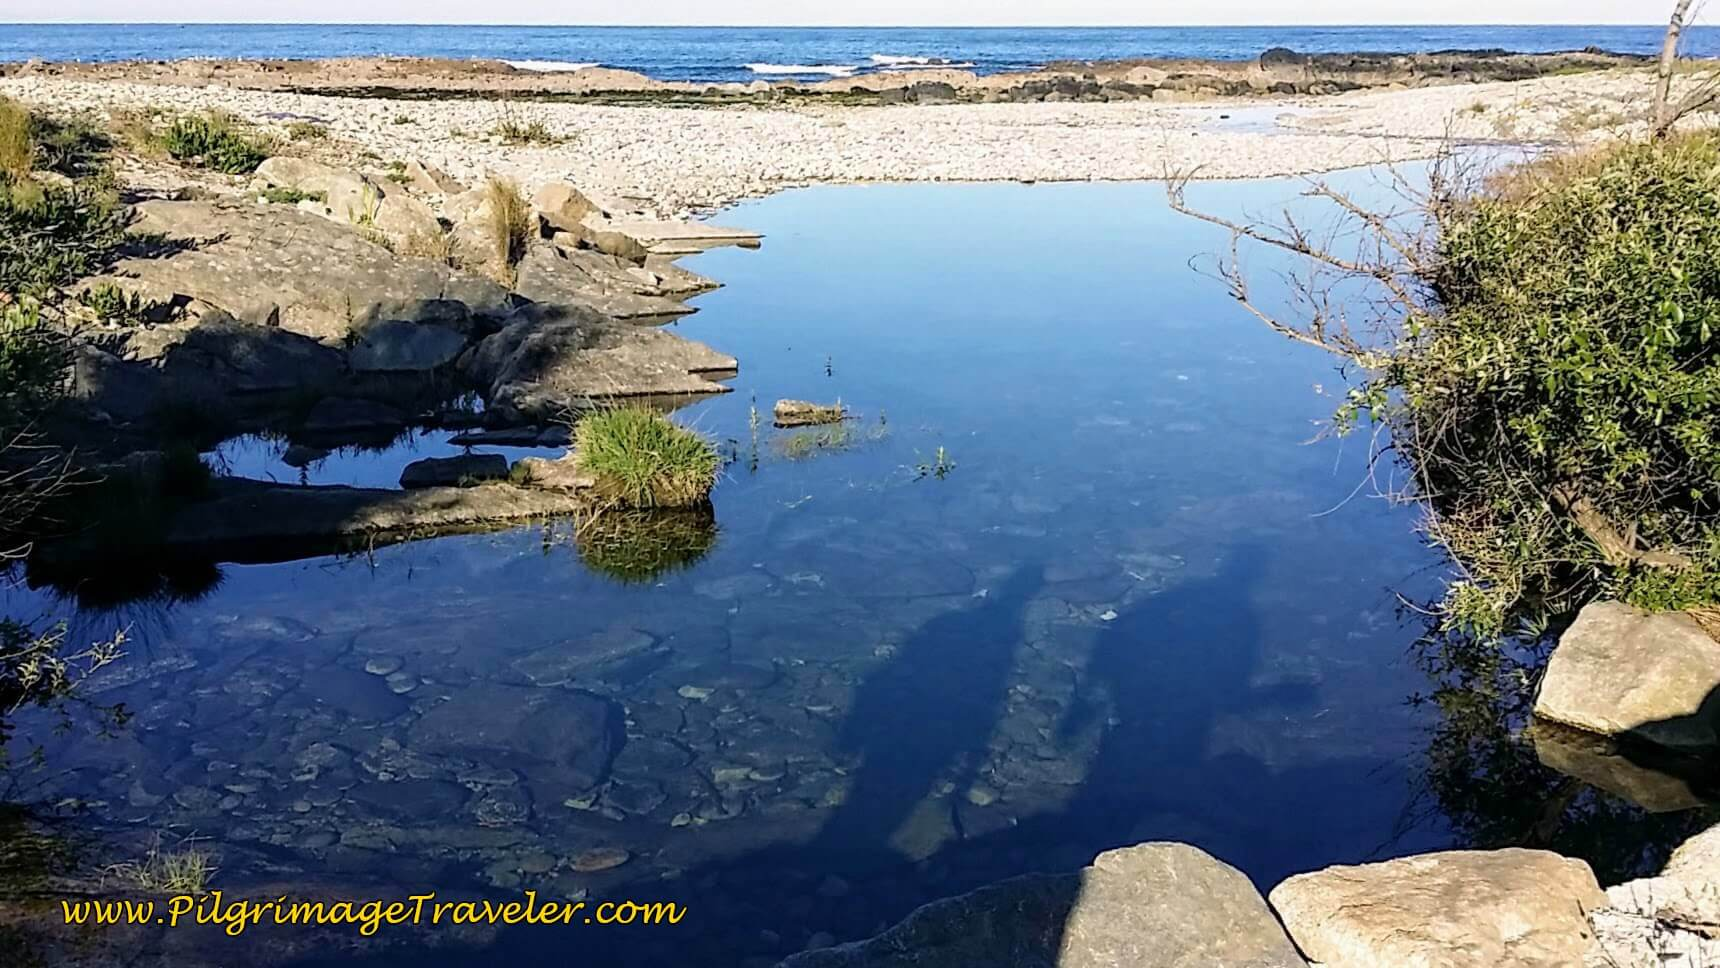 Reflection of Two Pilgrims on day eighteen of the Camino Portugués on the Senda Litoral